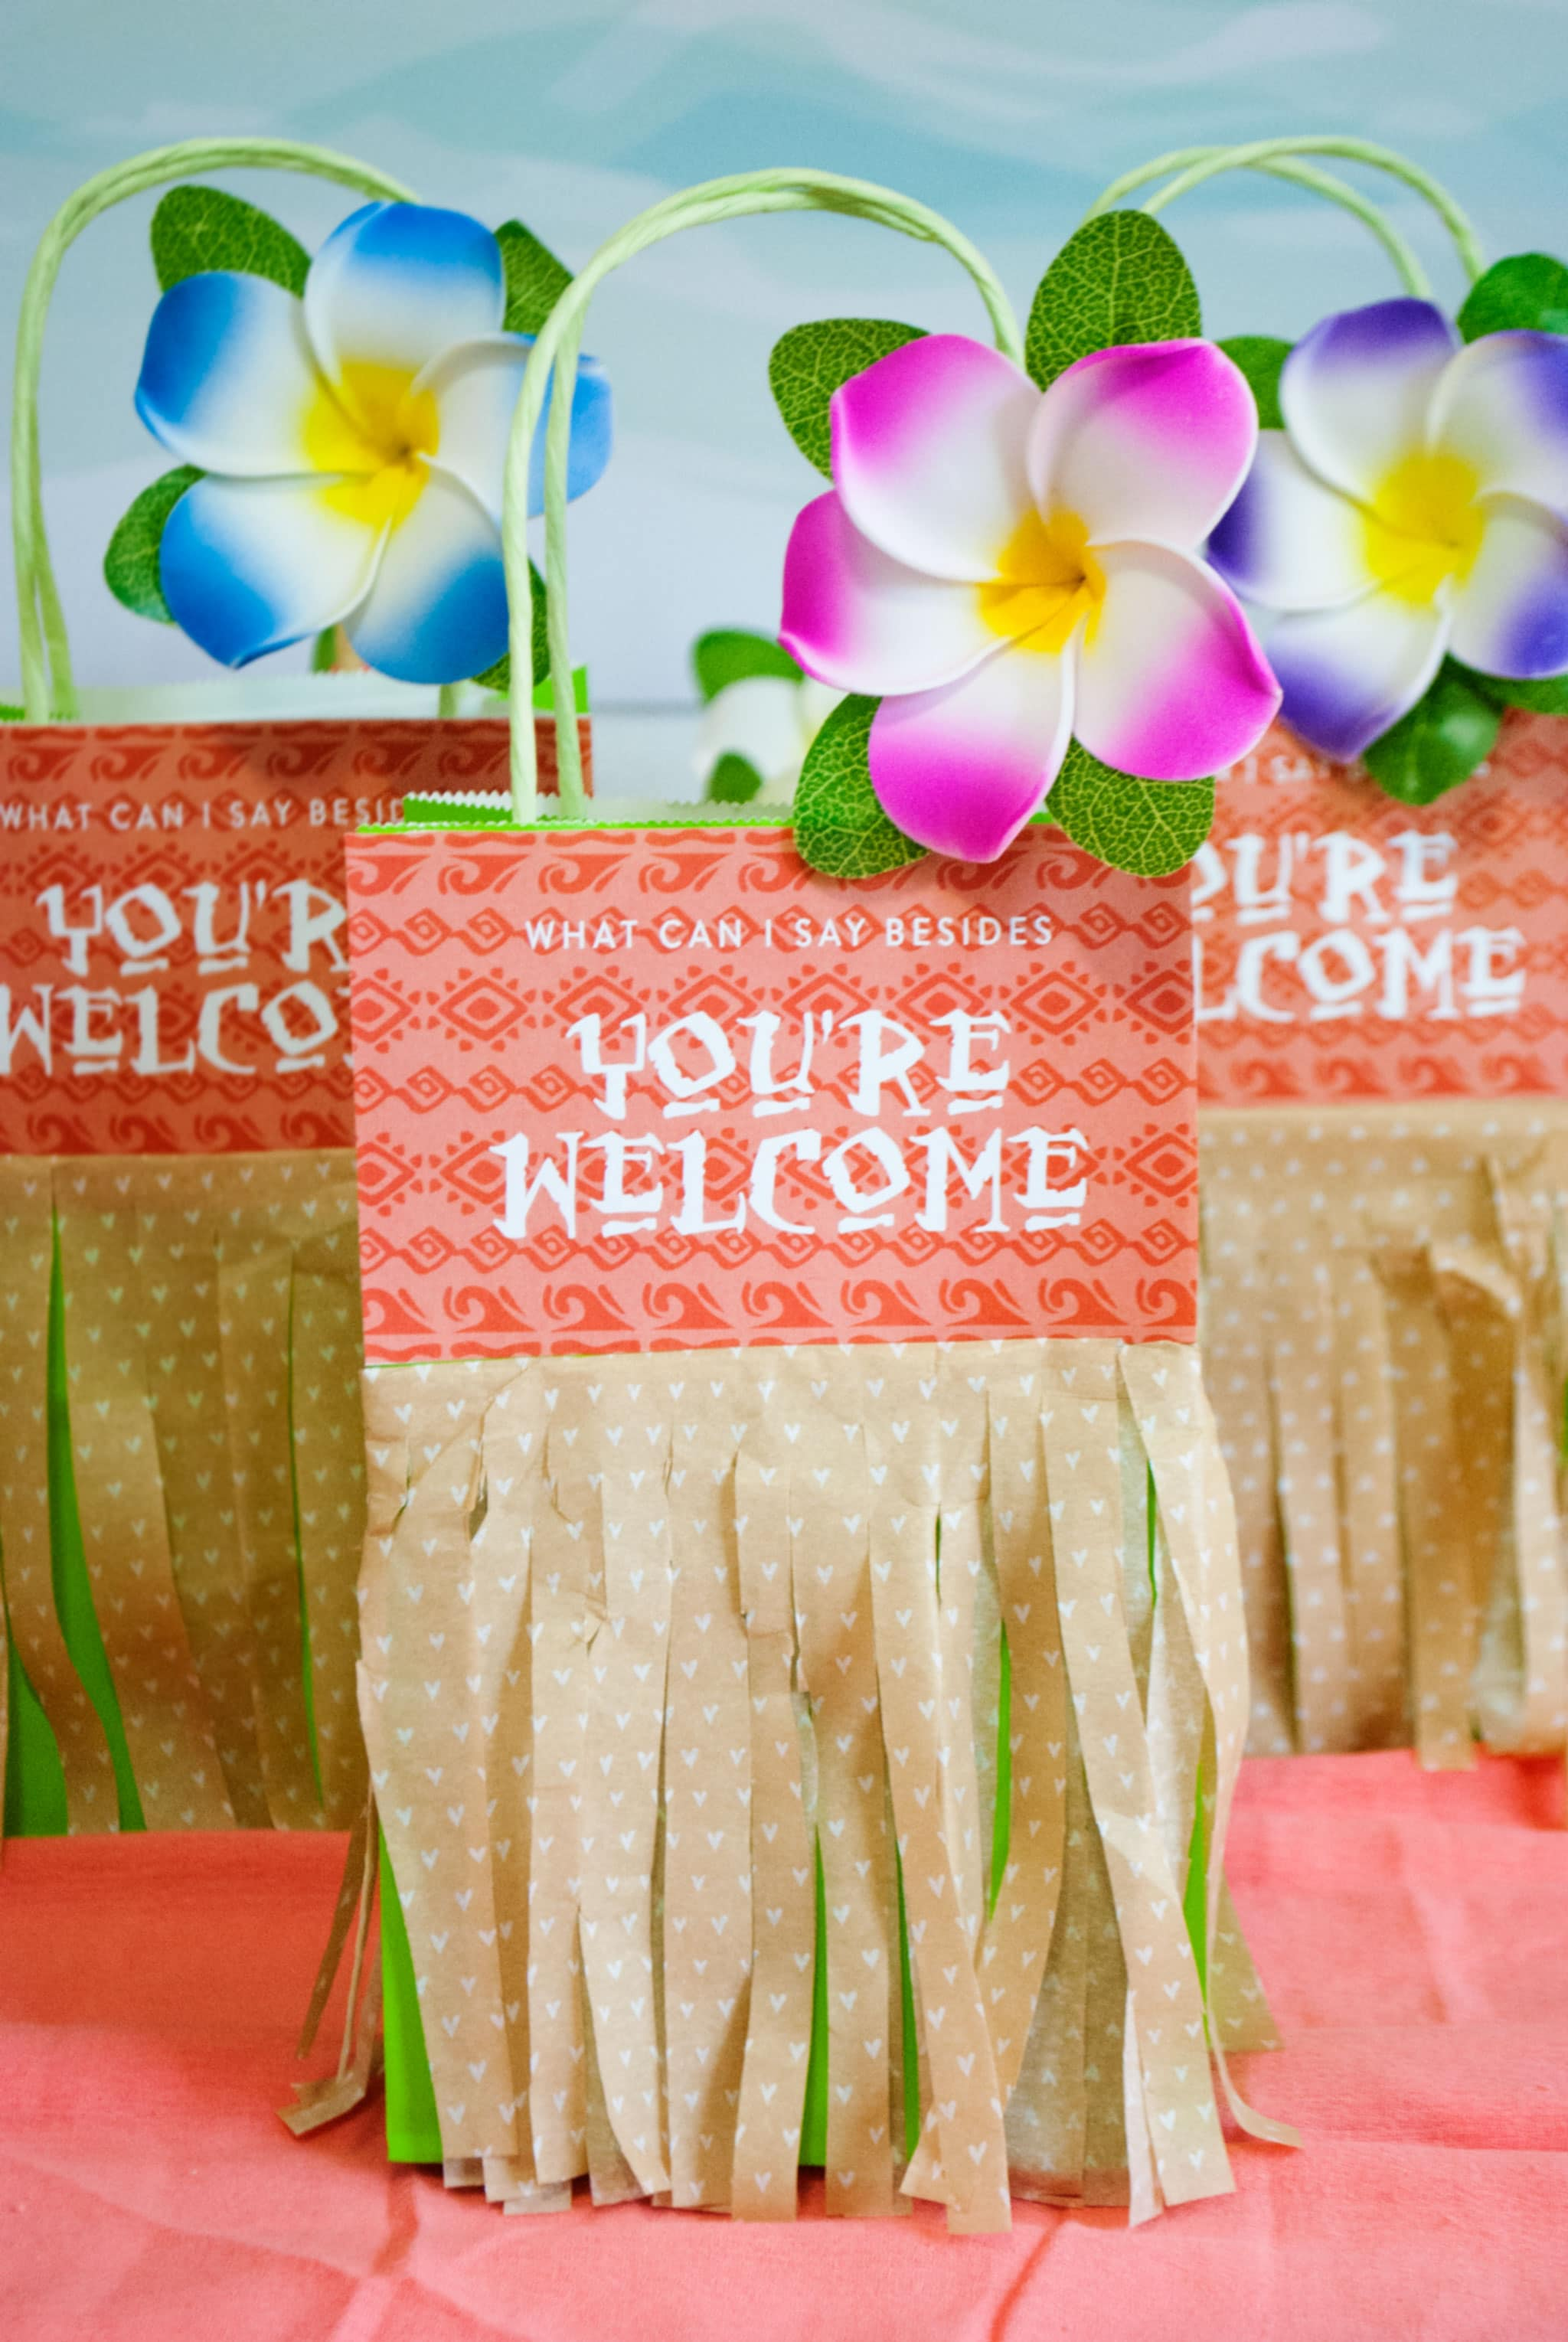 Moana Birthday Party Ideas Gift Bags - Project Nursery